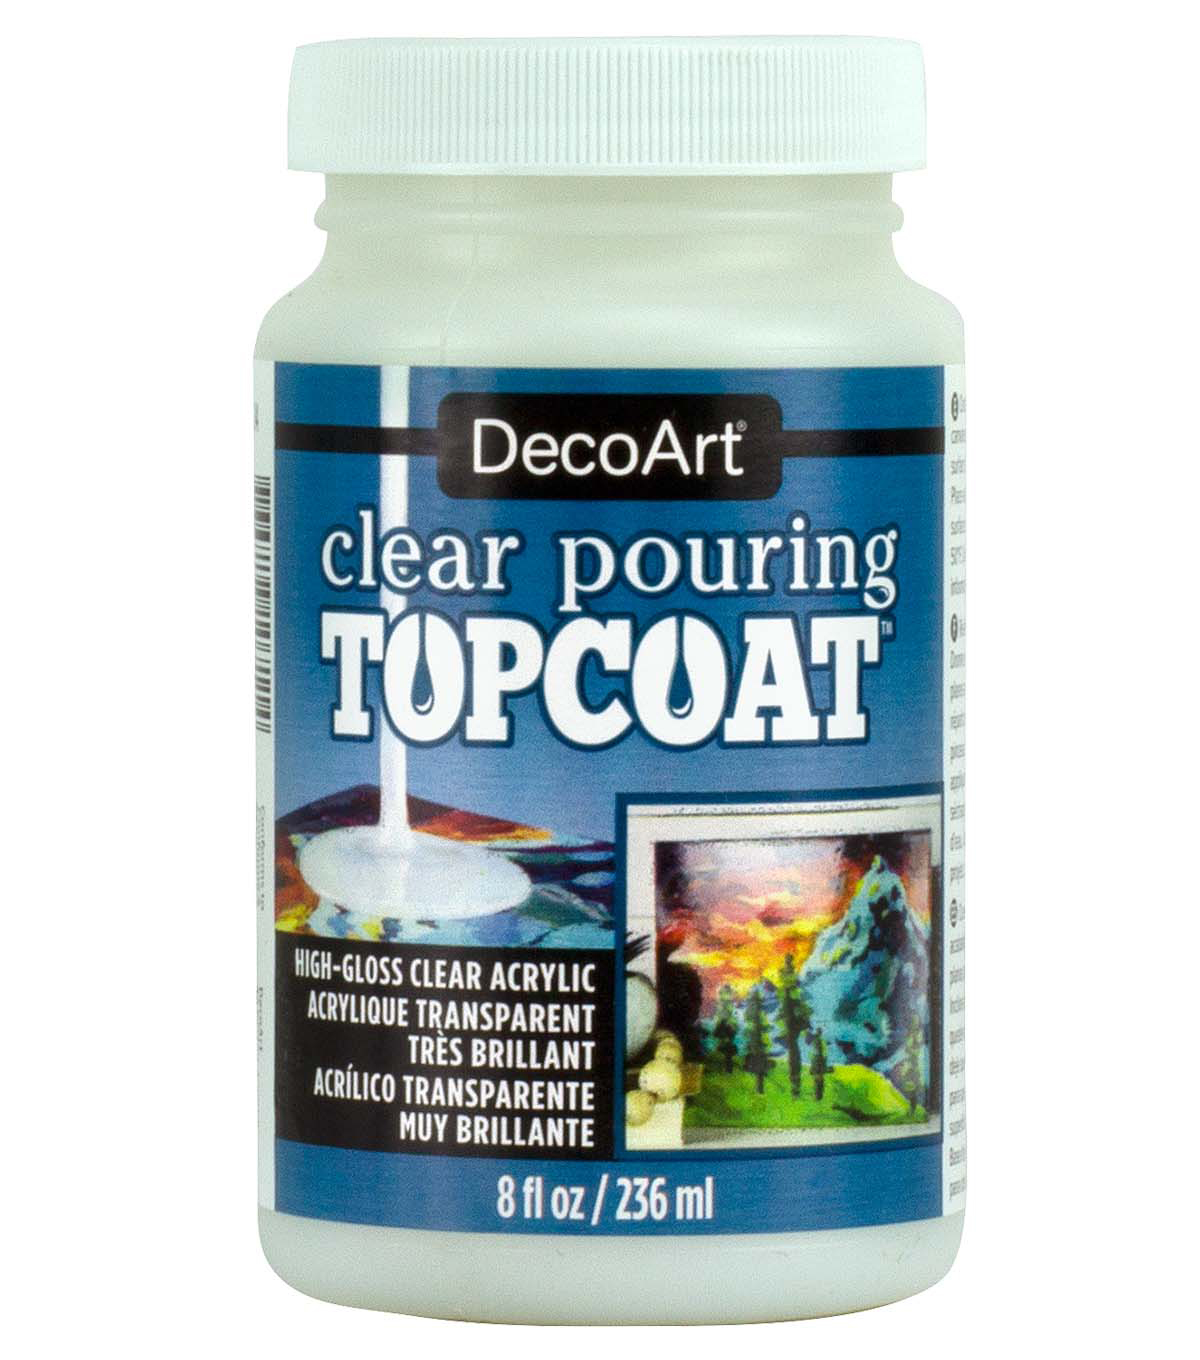 DecoArt 8 fl. oz. Pouring Topcoat-Clear